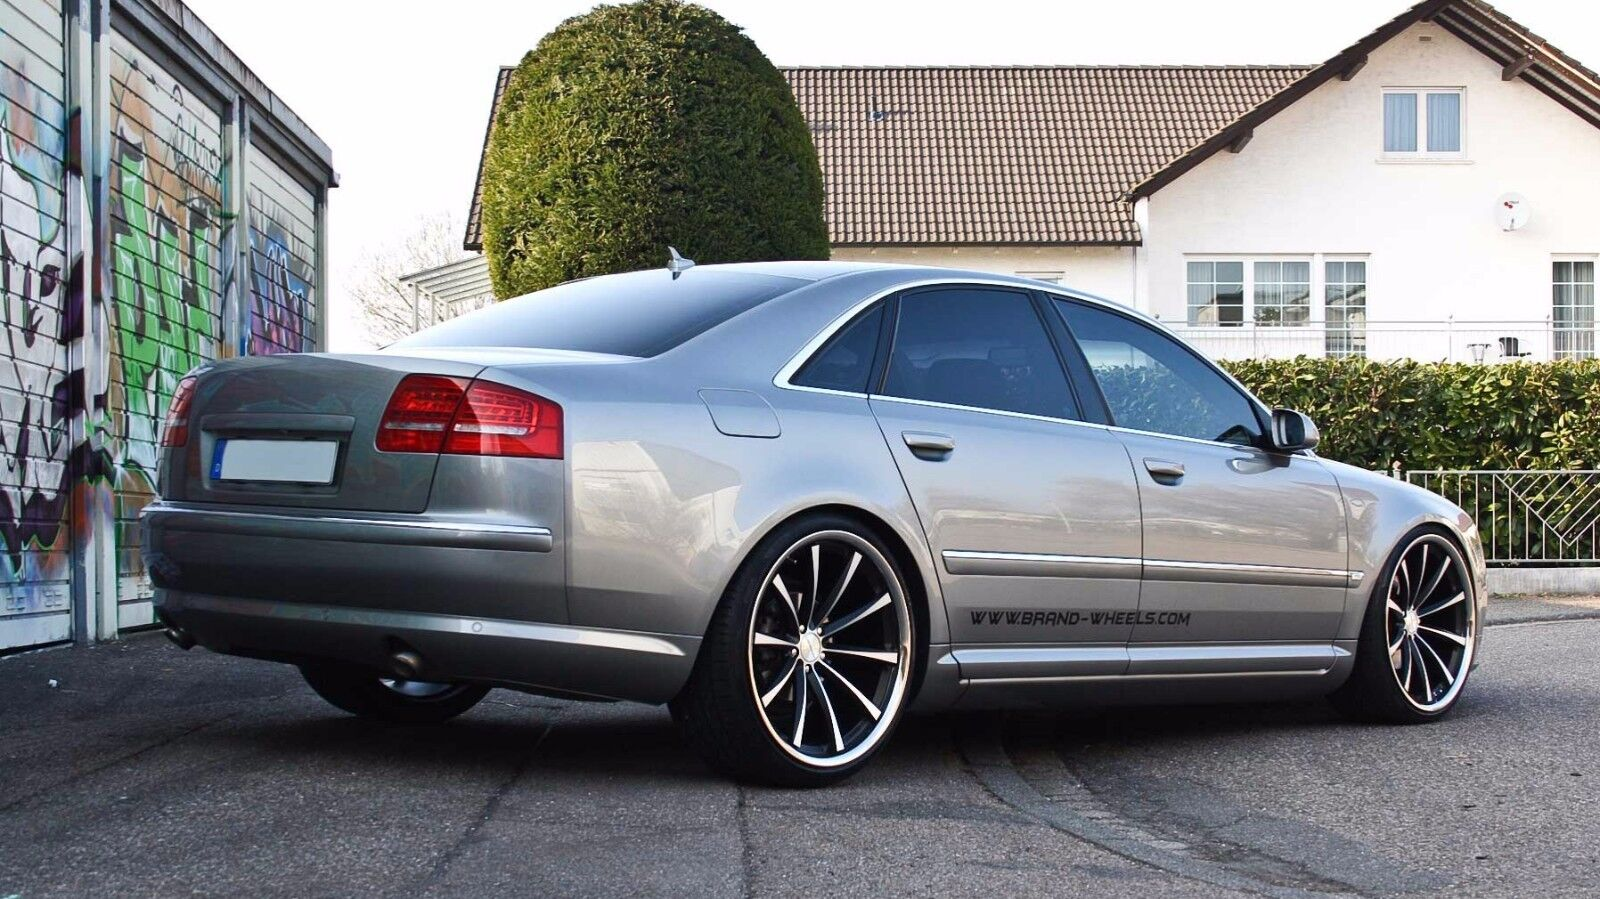 LINKS D3 LOWERING KIT AUDI A8 S8 LINKAGES